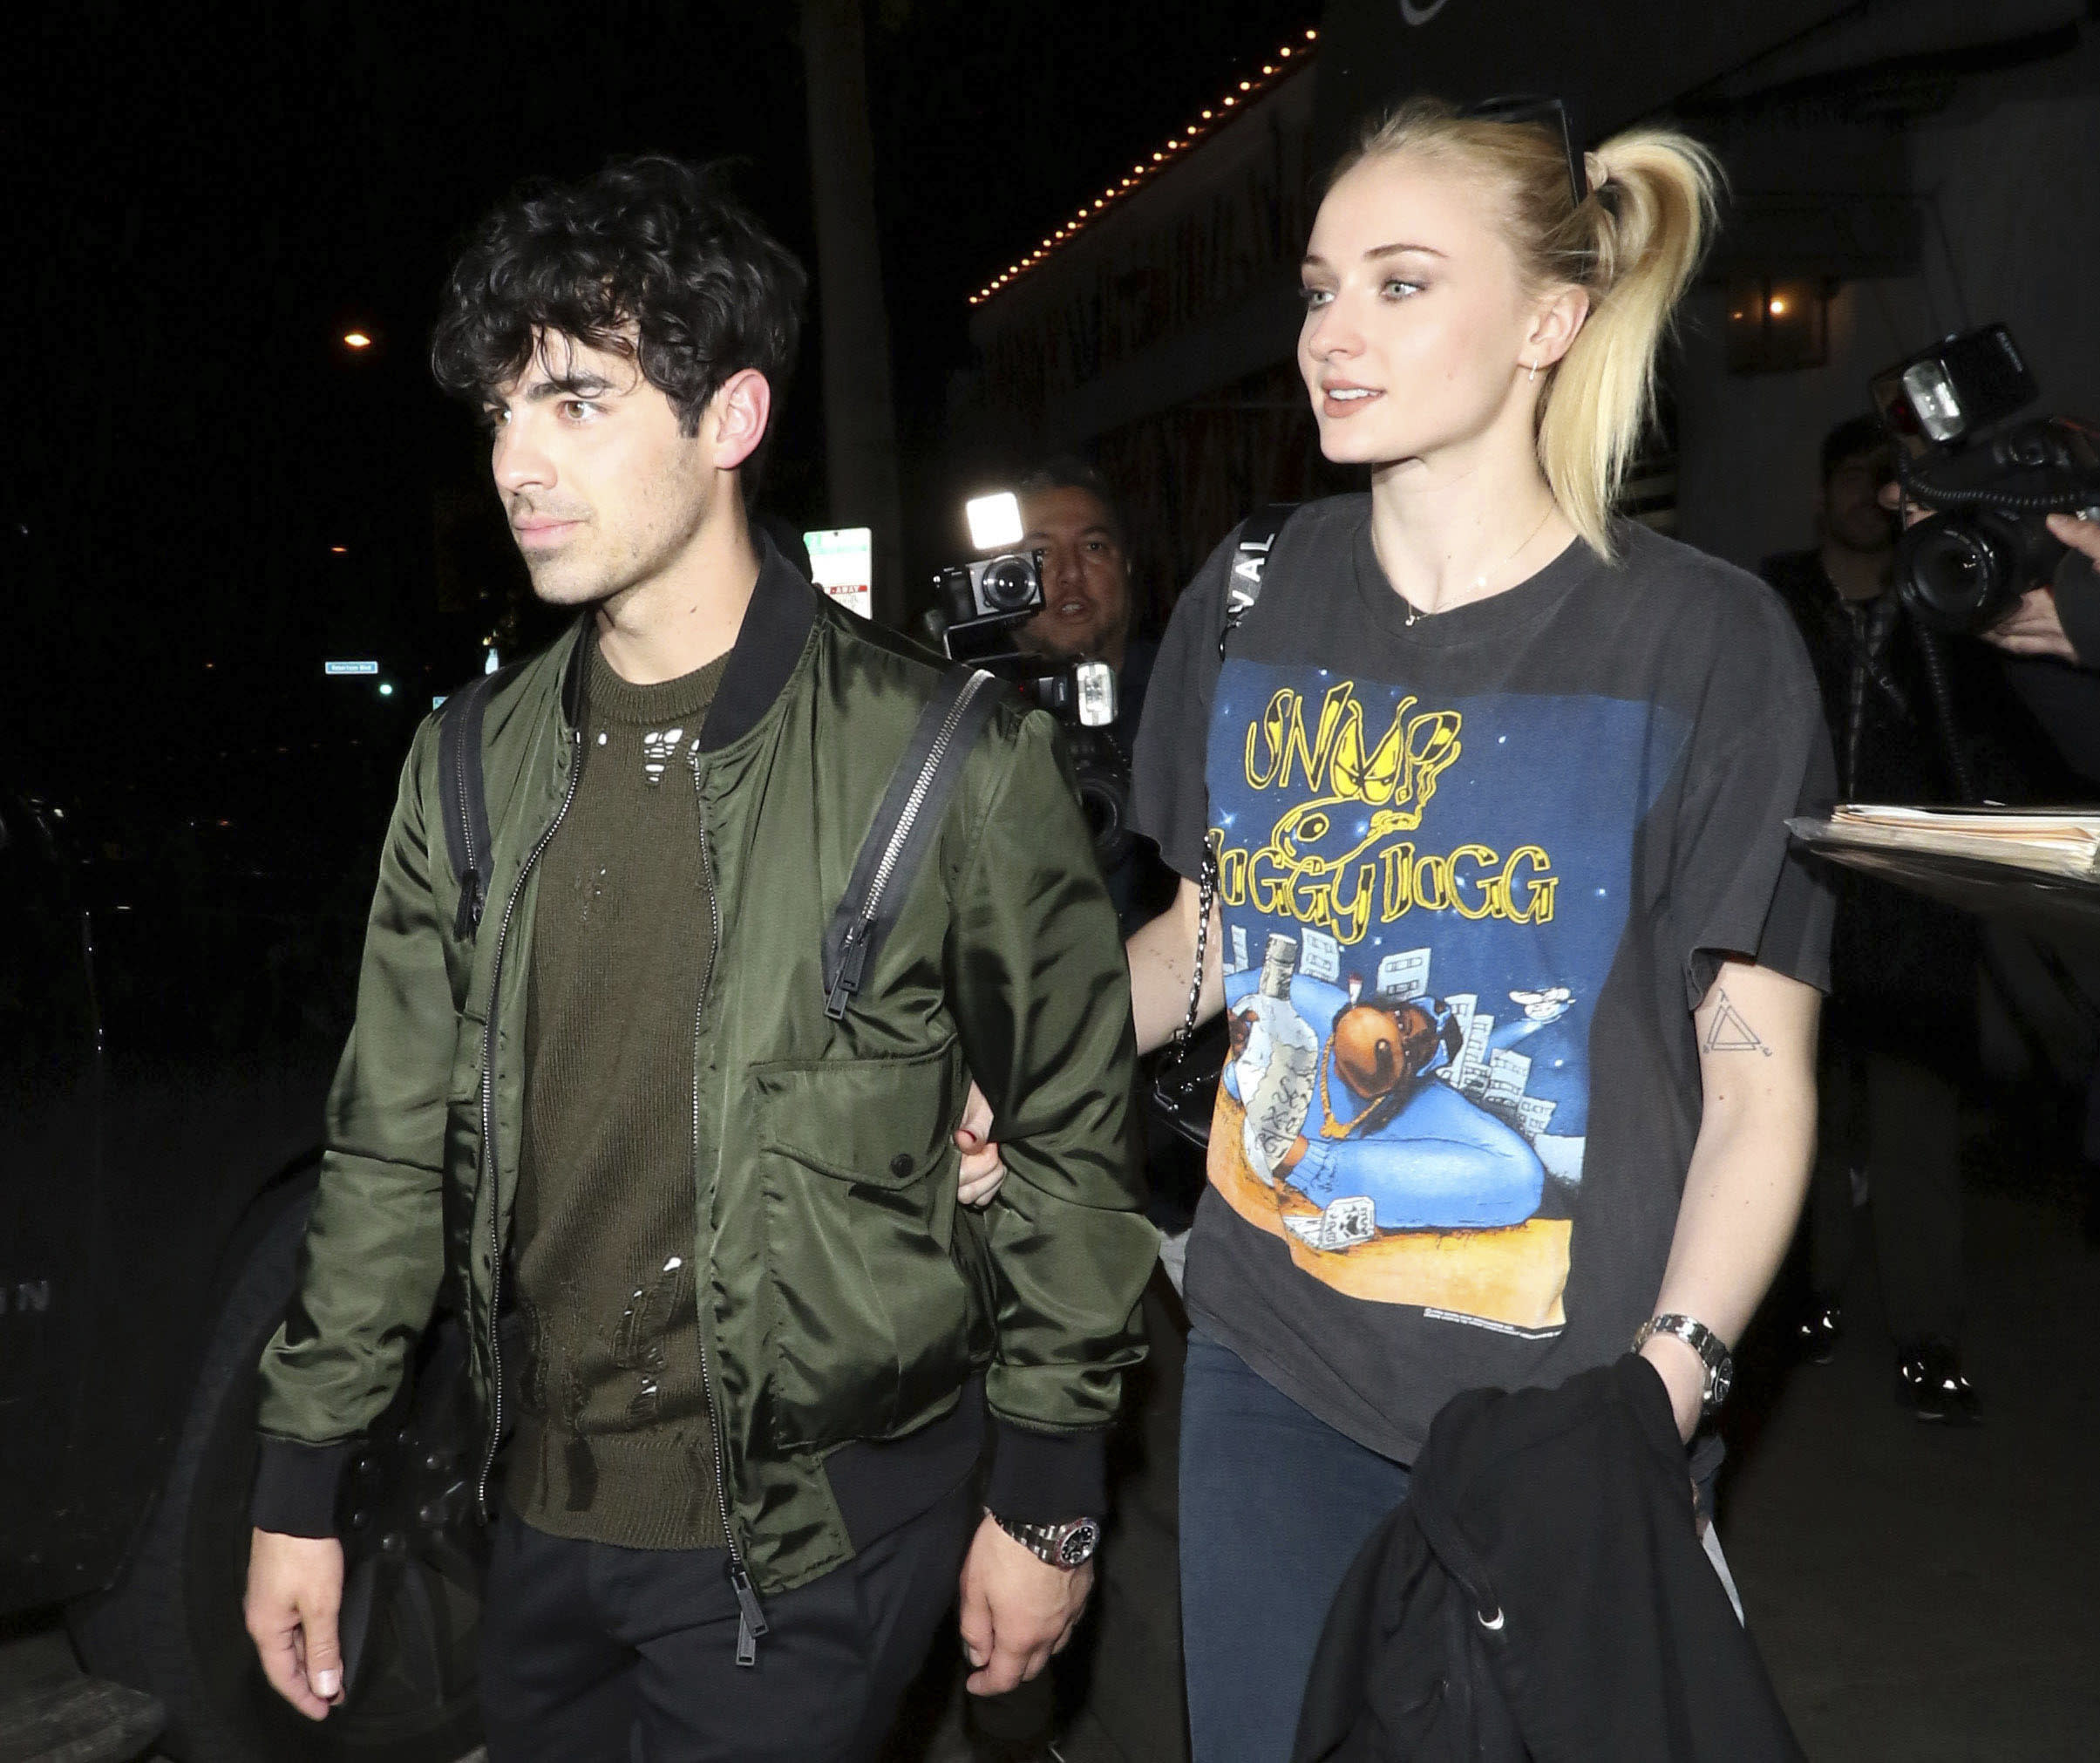 Photo by: zz/GOTPAP/STAR MAX/IPx 2019 3/4/19 Joe Jonas and Sophie Turner are seen outside Craig's Restaurant in West Hollywood, Los Angeles, CA.